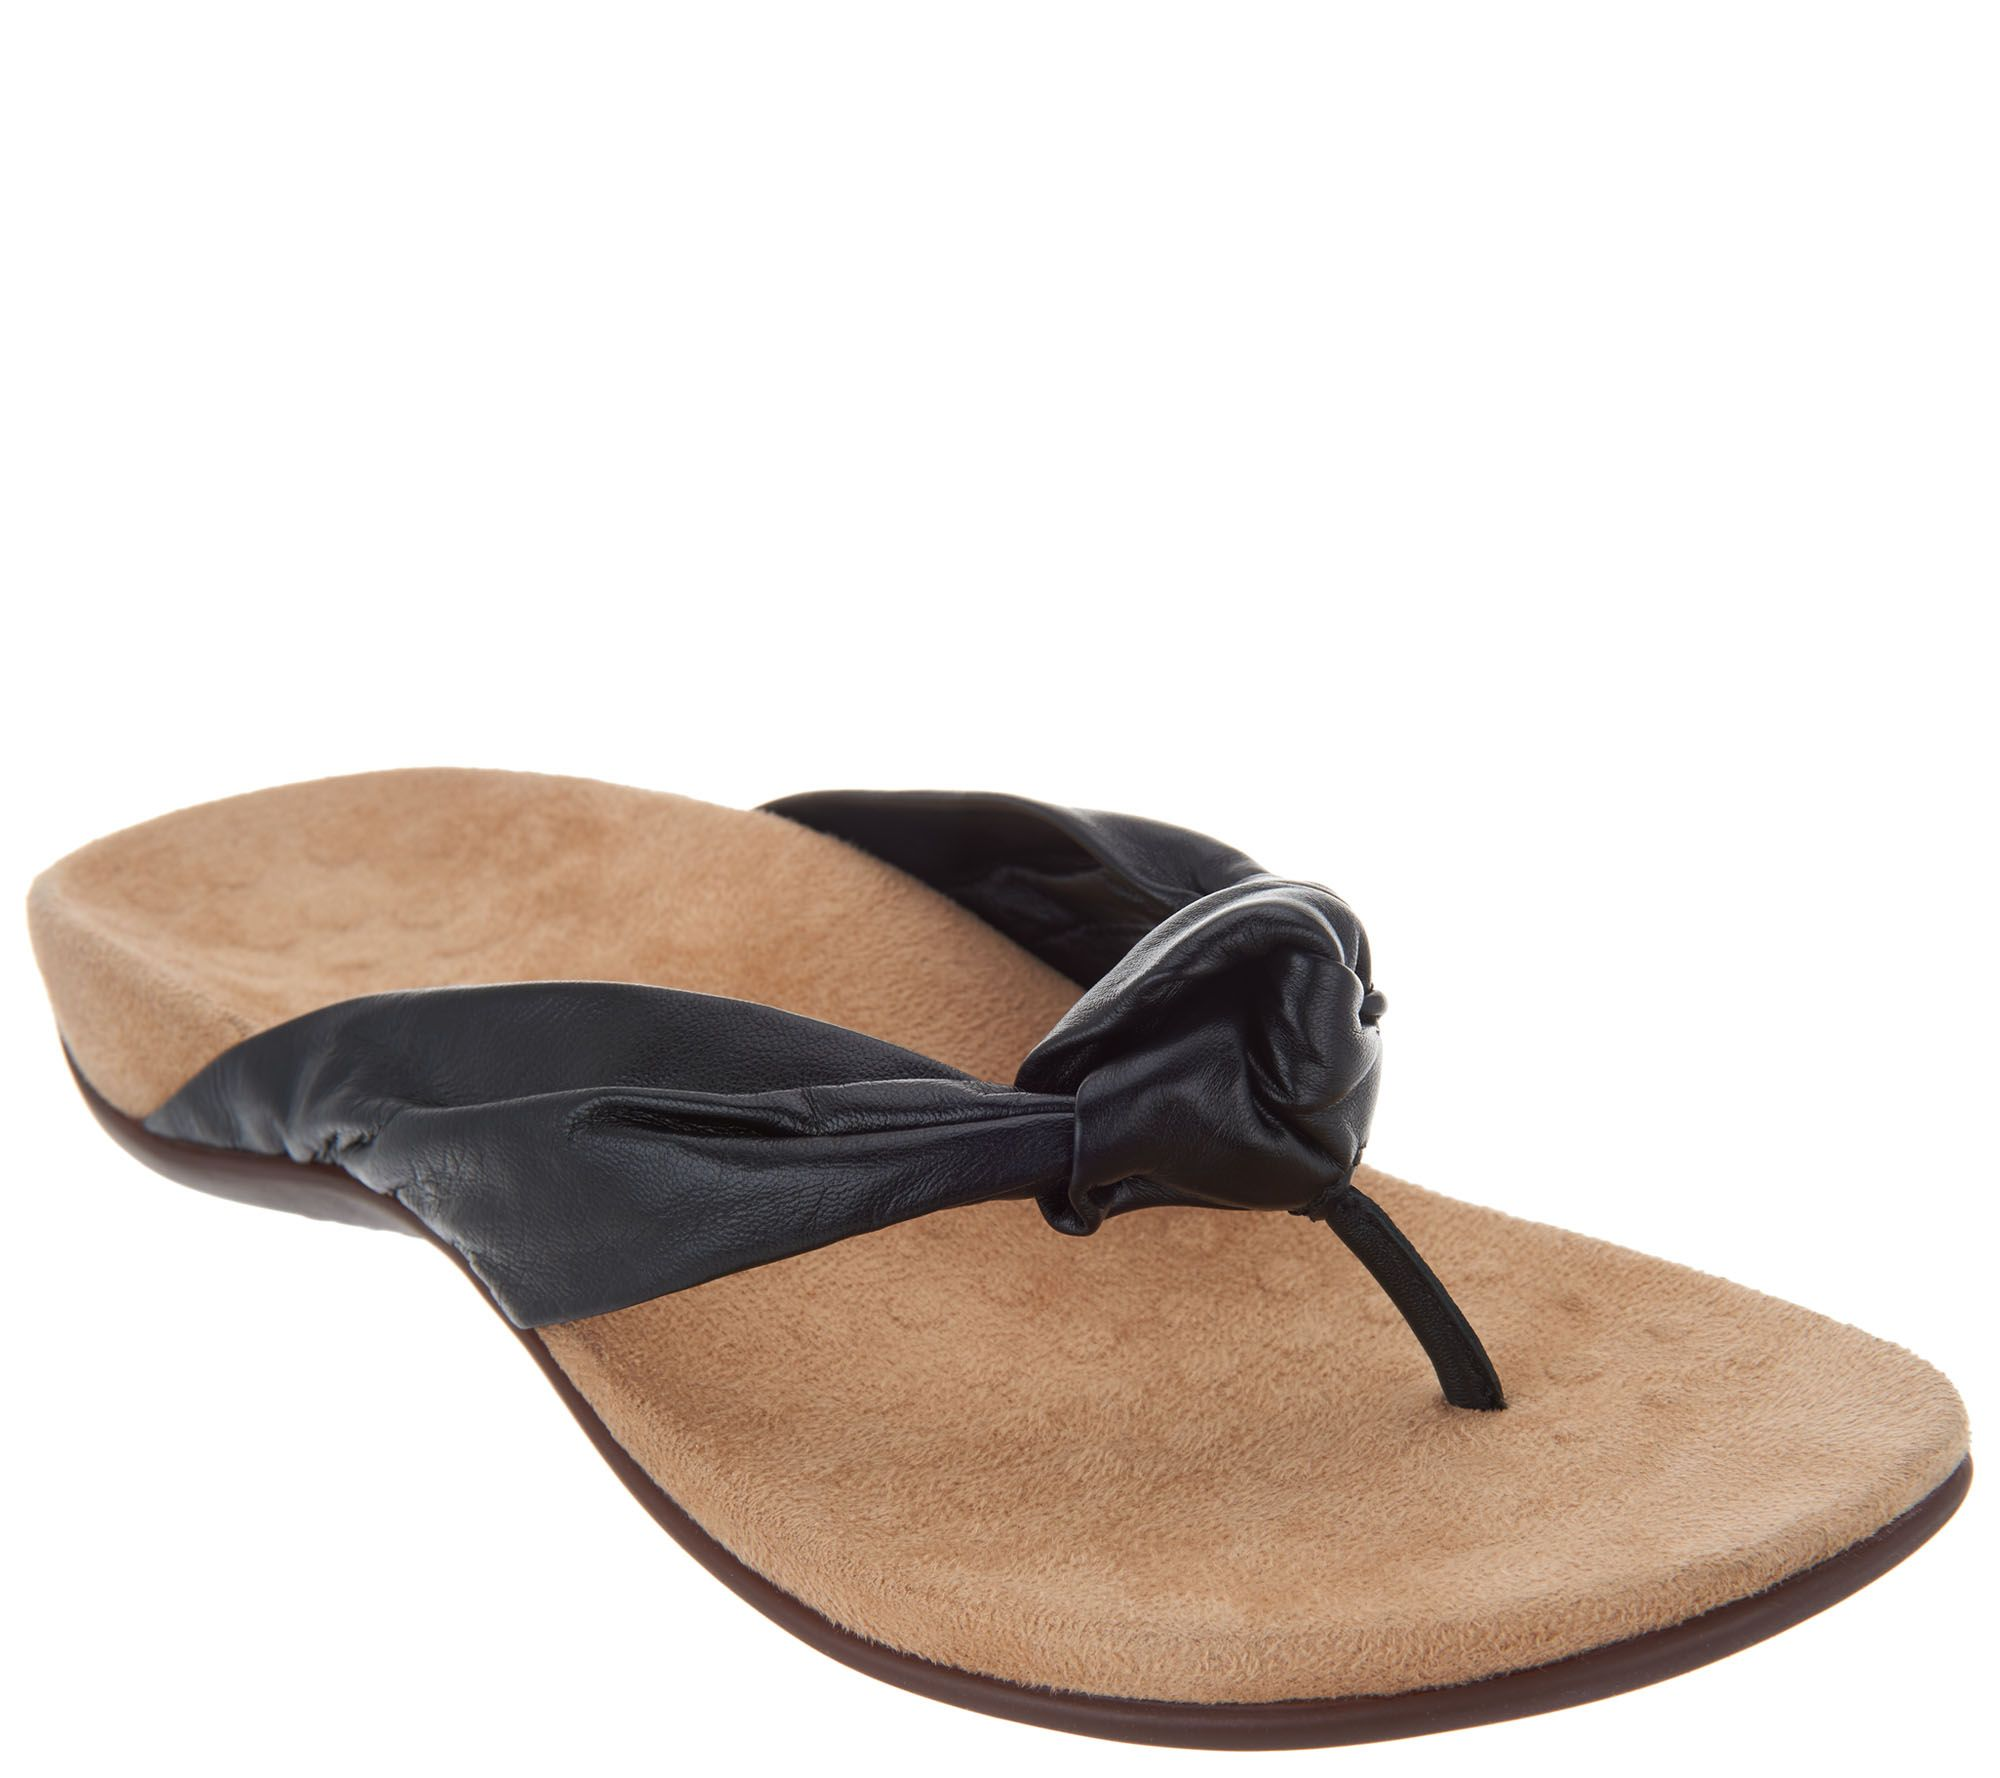 0509ef72ef19 Vionic Leather Knotted Thong Sandals - Pippa - Page 1 — QVC.com